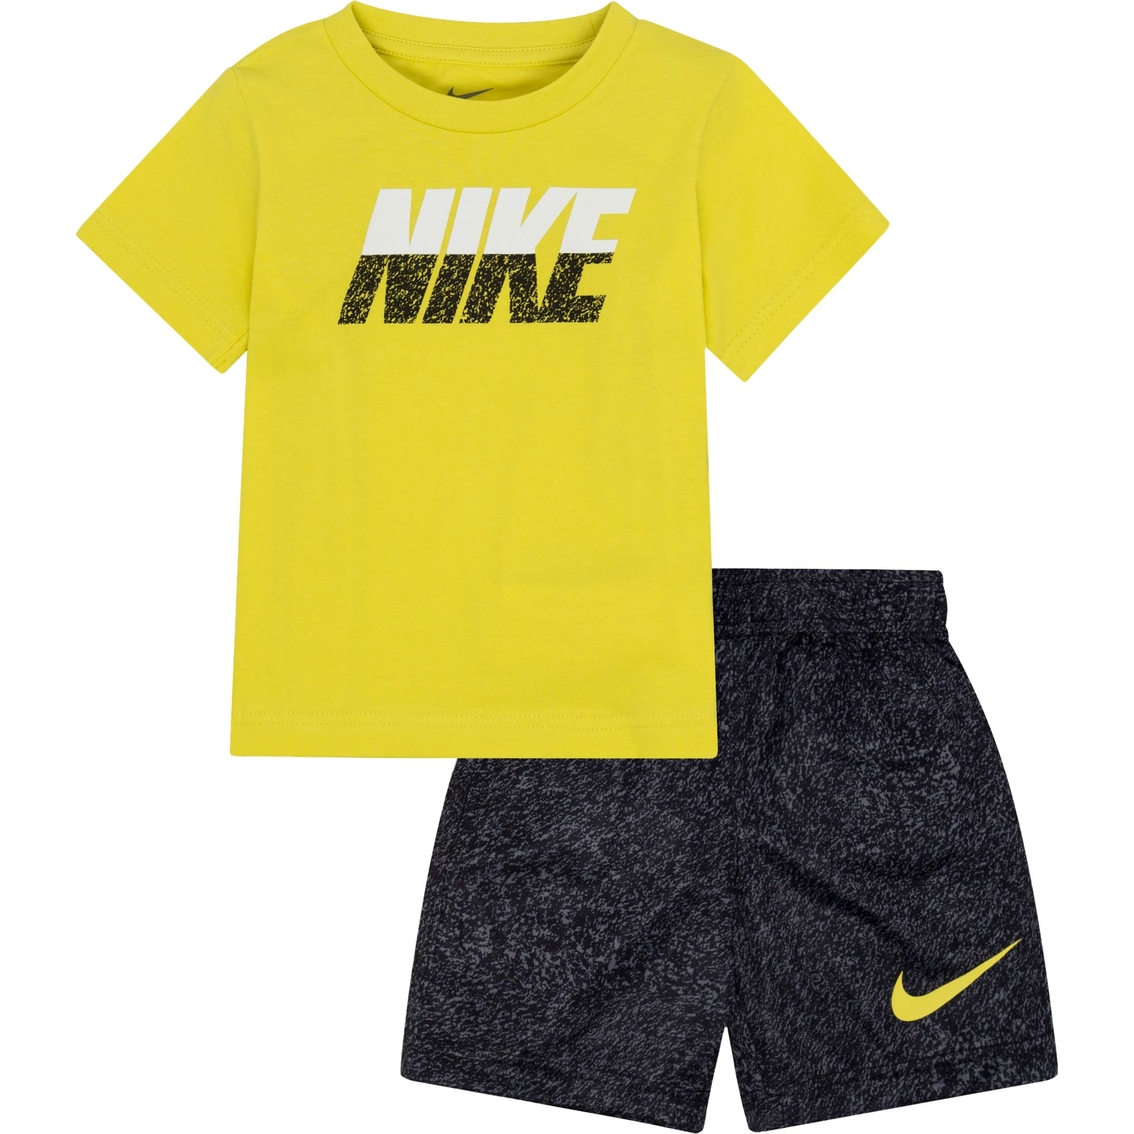 48198f3b796 Nike Toddler Boys 2 Pc. Cotton Jersey Tee And Split Shorts Set ...